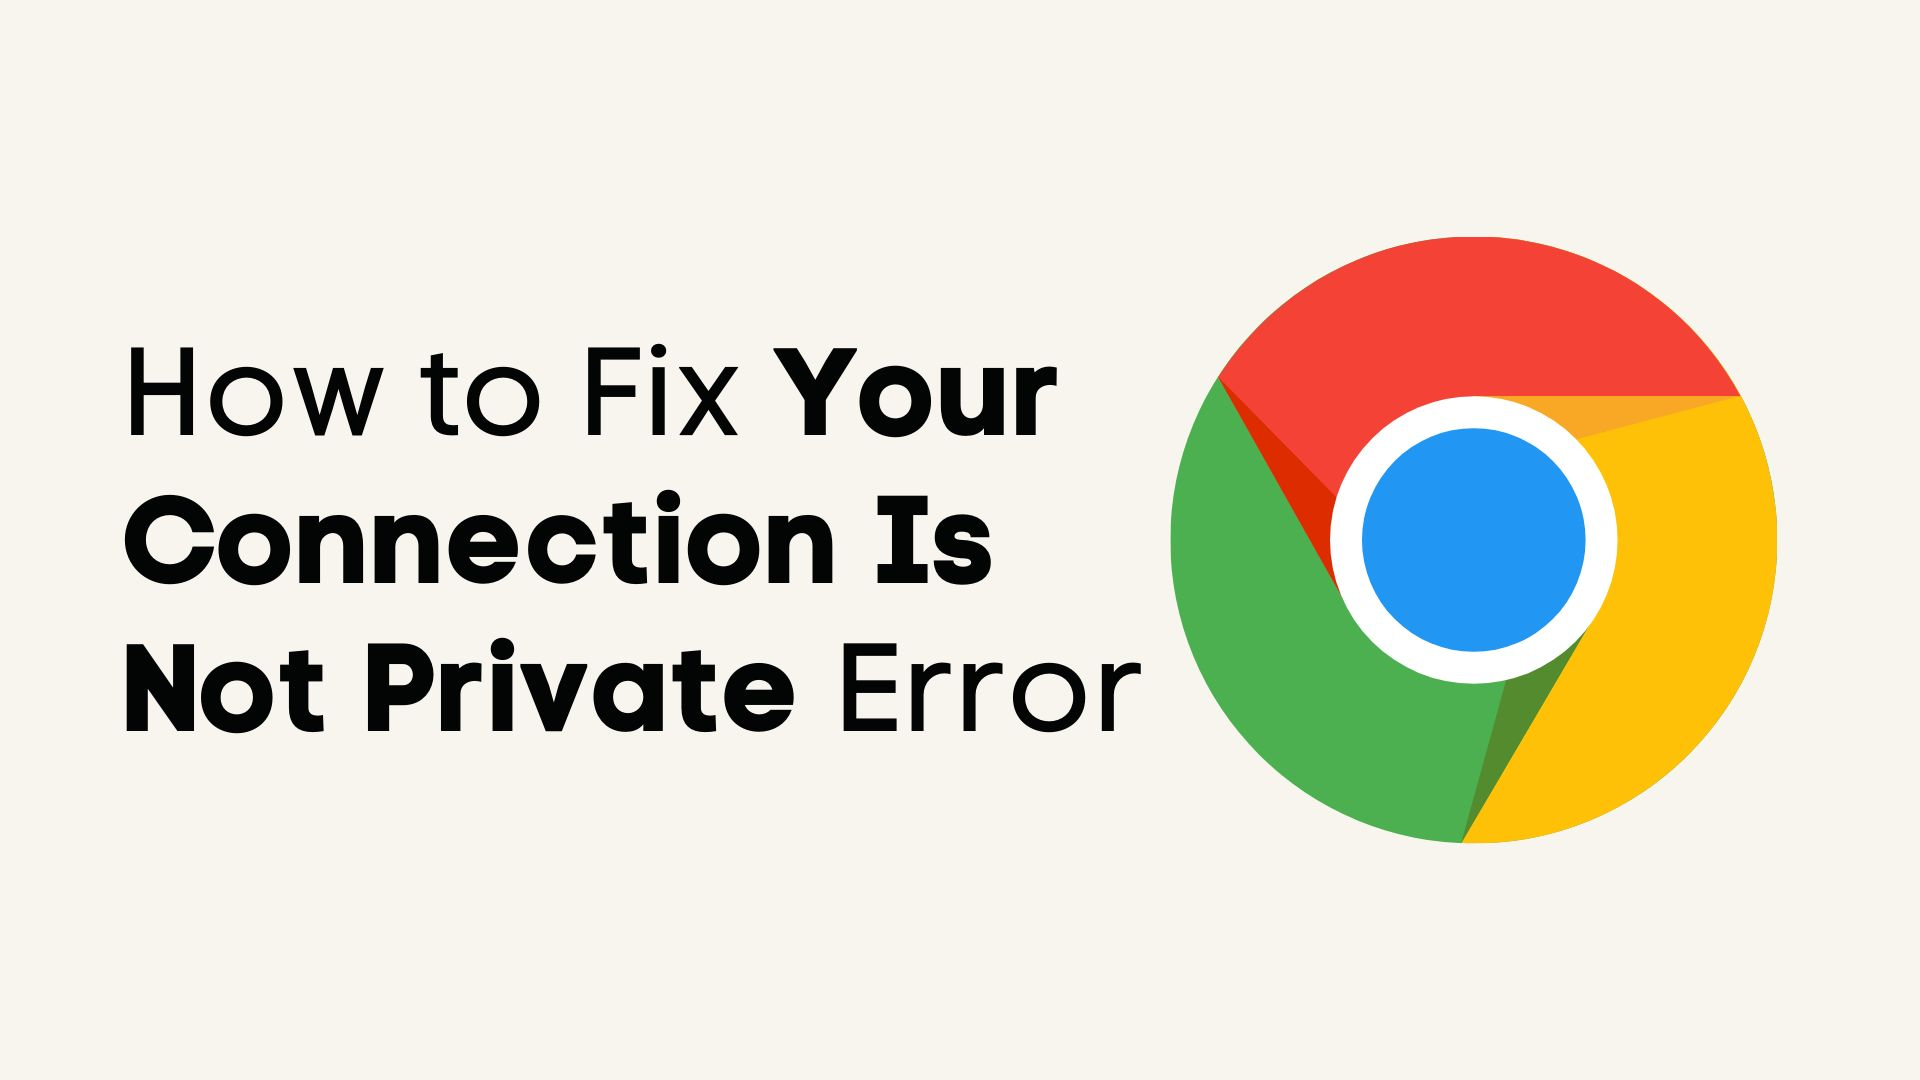 How to Fix Your Connection is Not Private Error in Chrome (18 Tips)